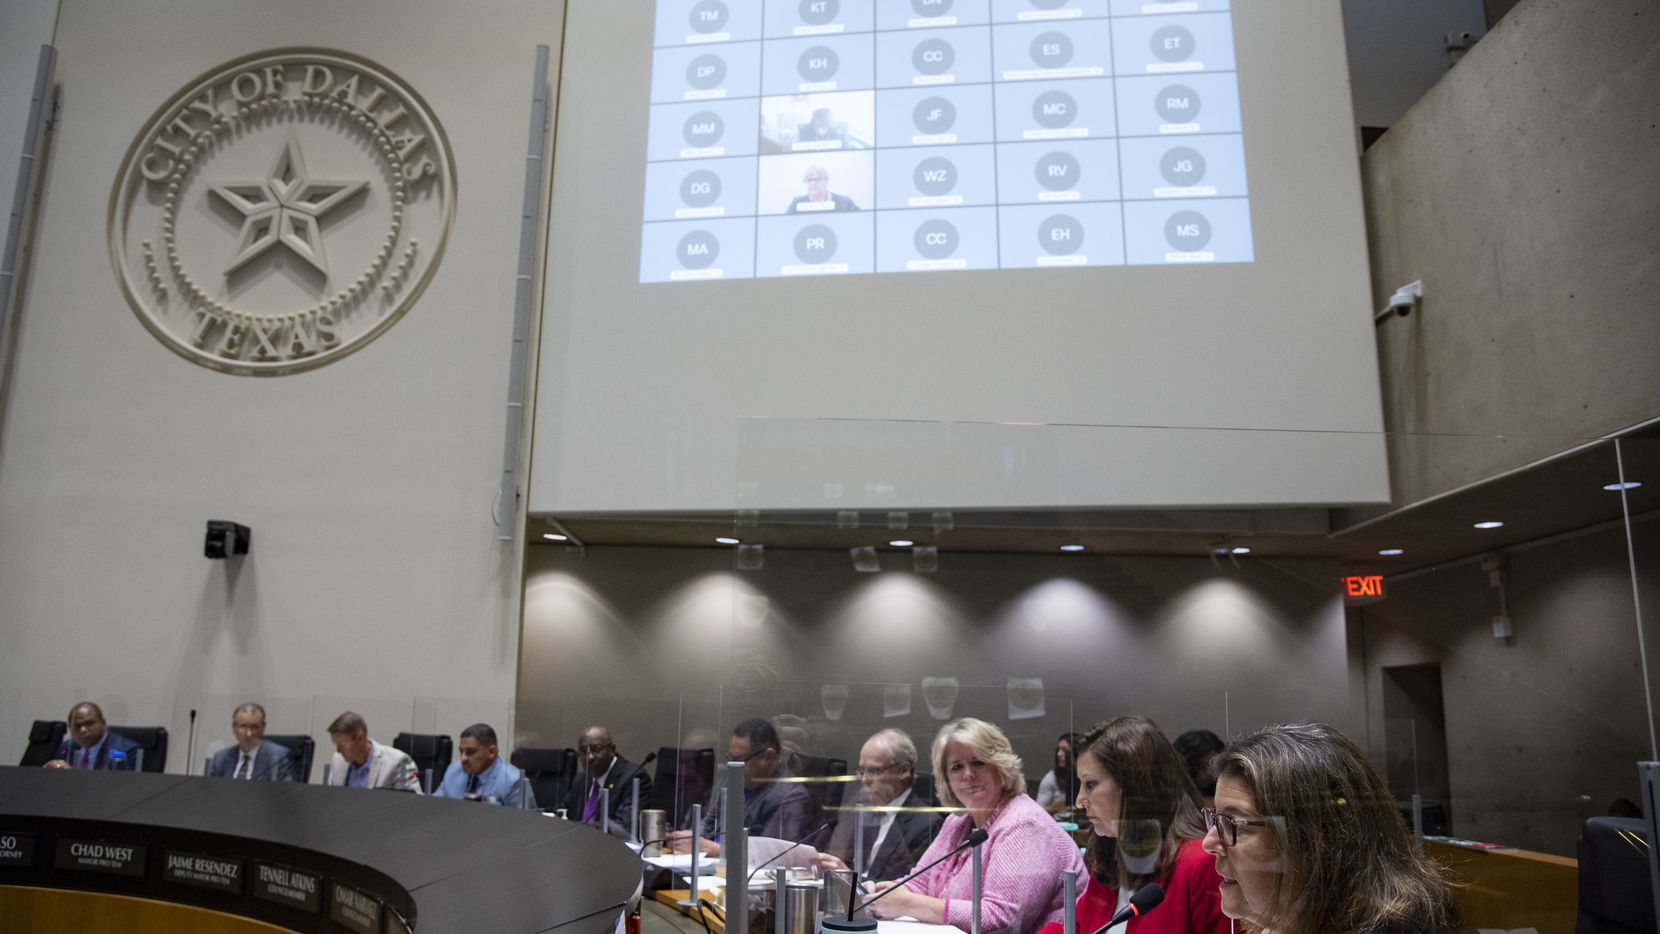 Dallas City Council Member Jaynie Schultz, District 11, makes a comment during a city council meeting at Dallas City Hall on Wednesday, September 22, 2021 in Dallas, Texas. (Emil Lippe/Special Contributor)